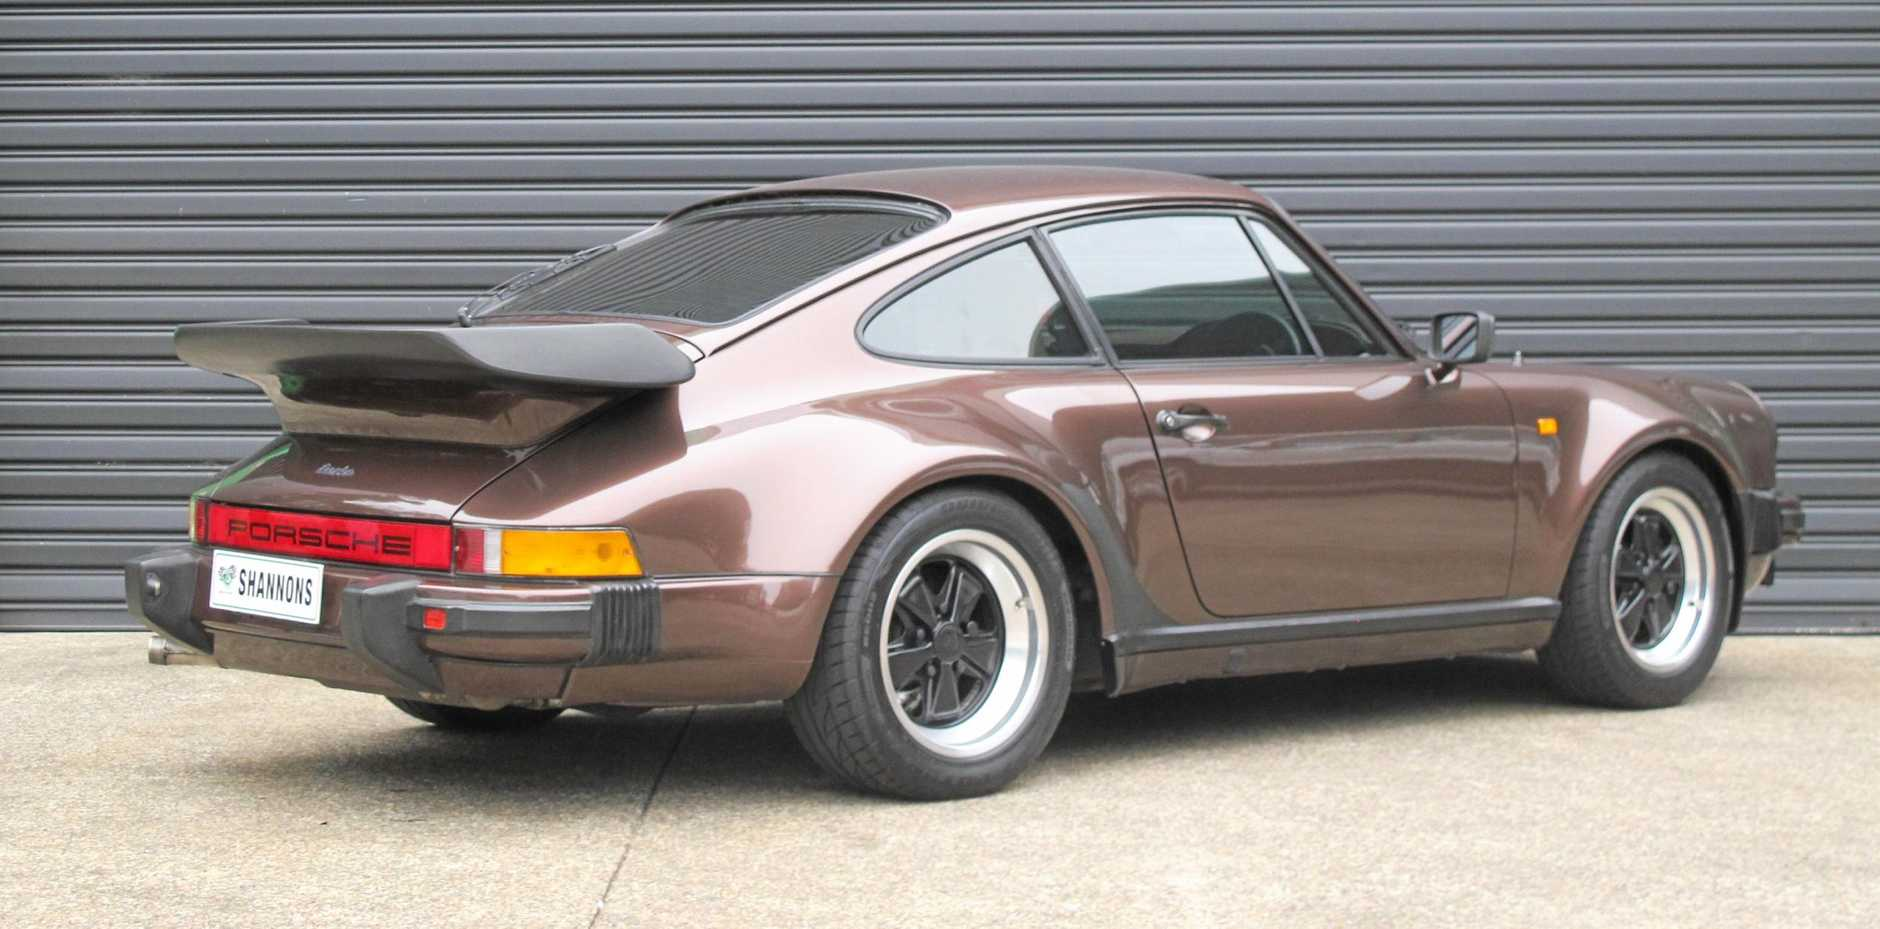 The Australian-delivered, low kilometre 1982 Porsche 930 Turbo Coupe sold for $181,000.